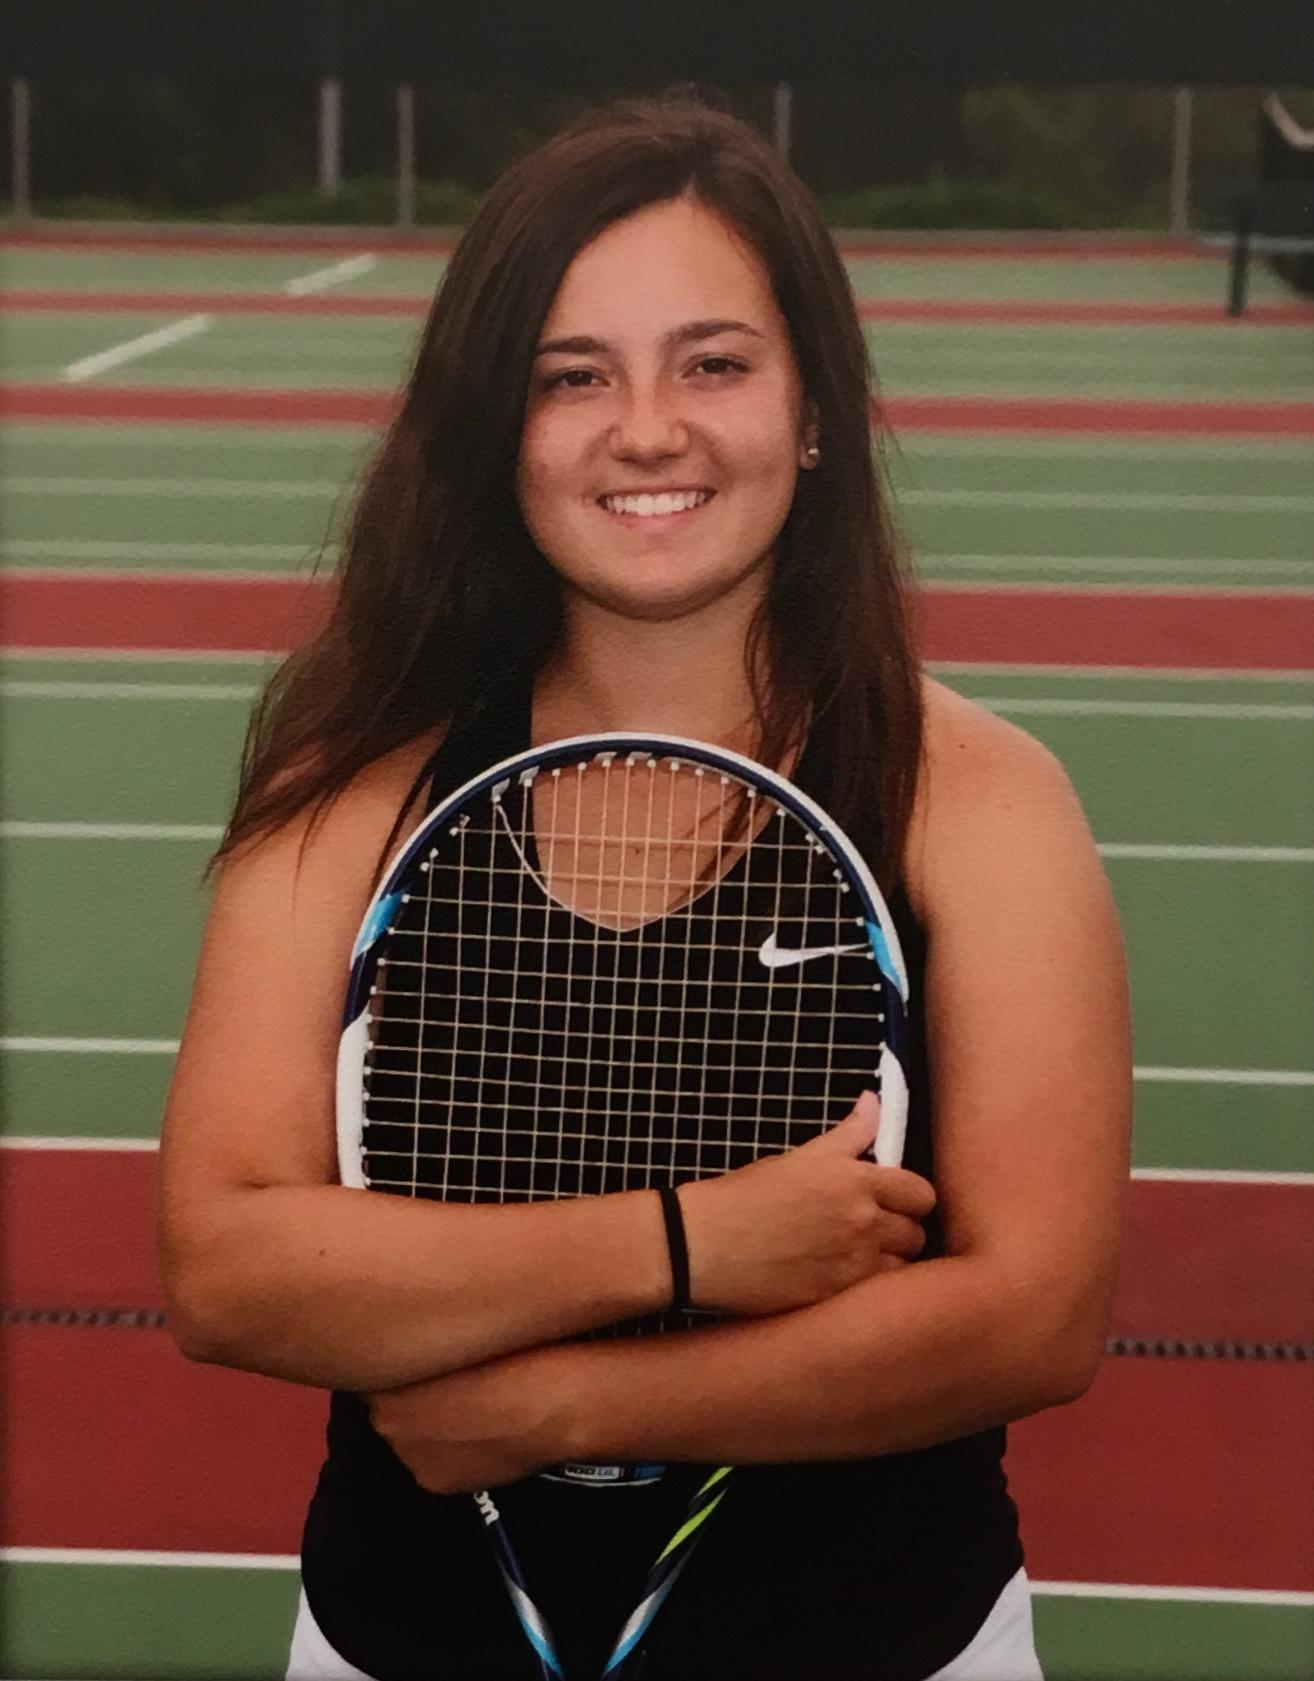 Emily Kramer poses with her tennis racket.